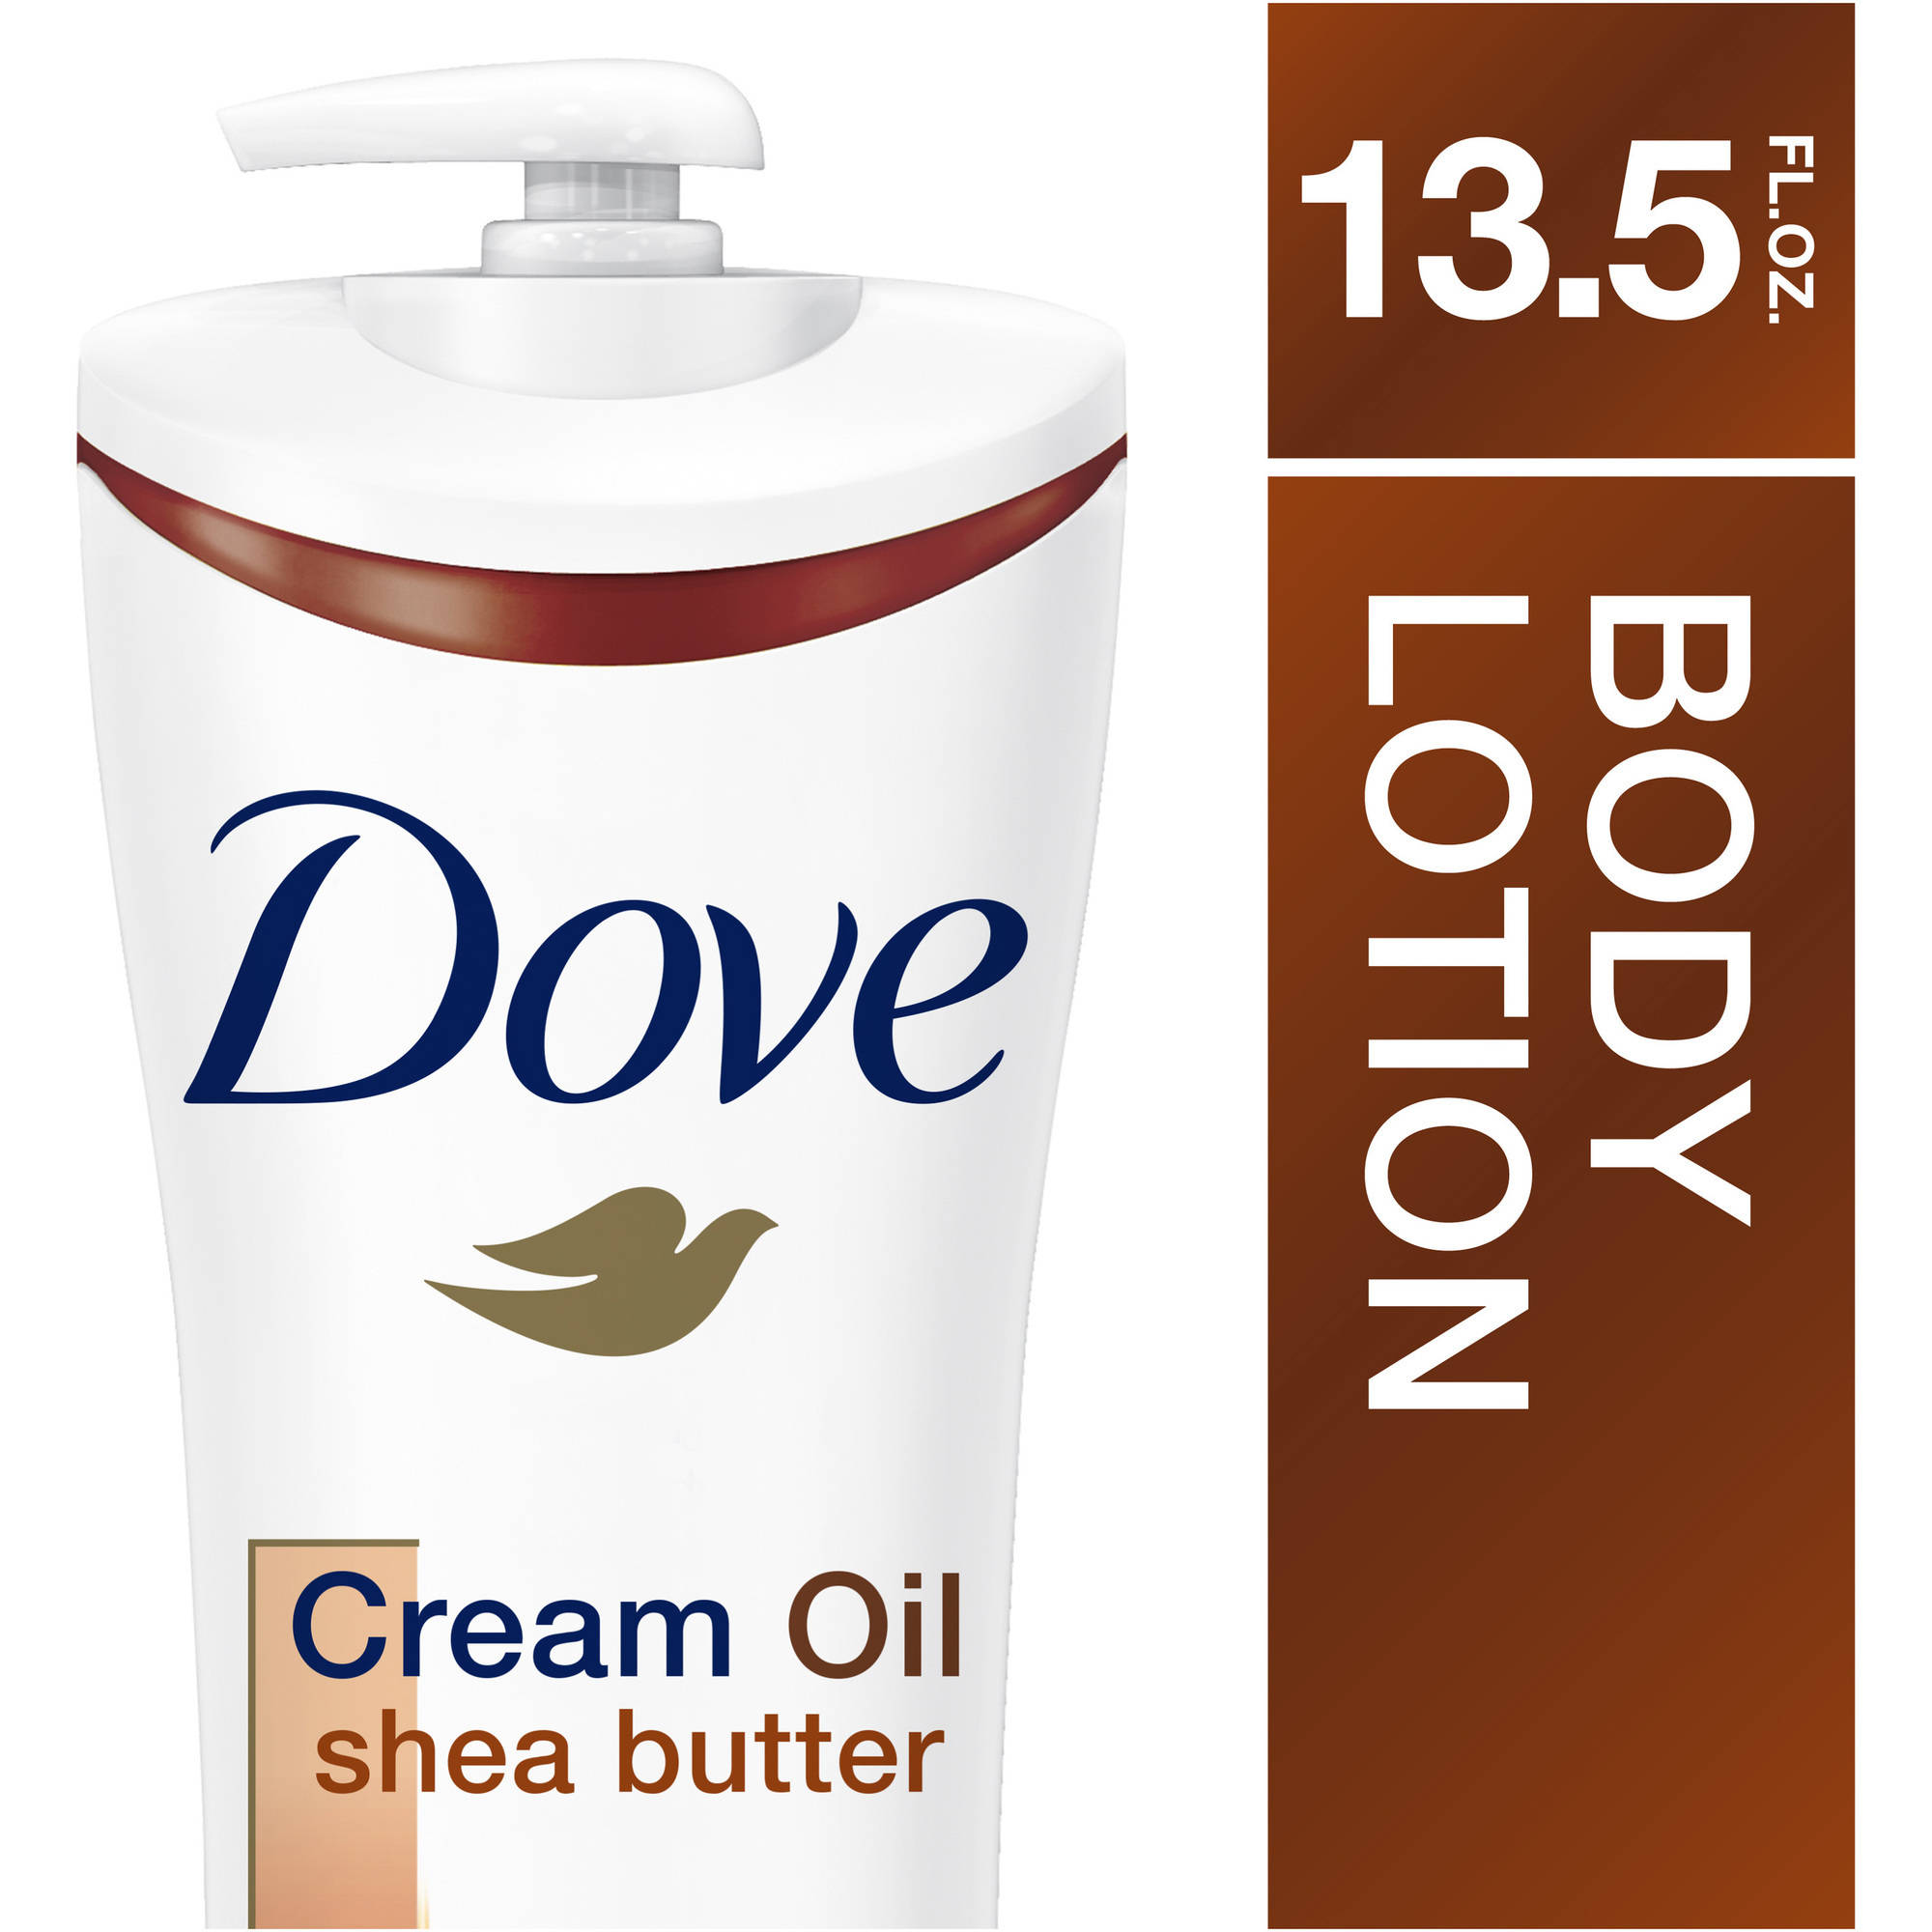 Dove Cream Oil Shea Butter Body Lotion, 13.5 oz